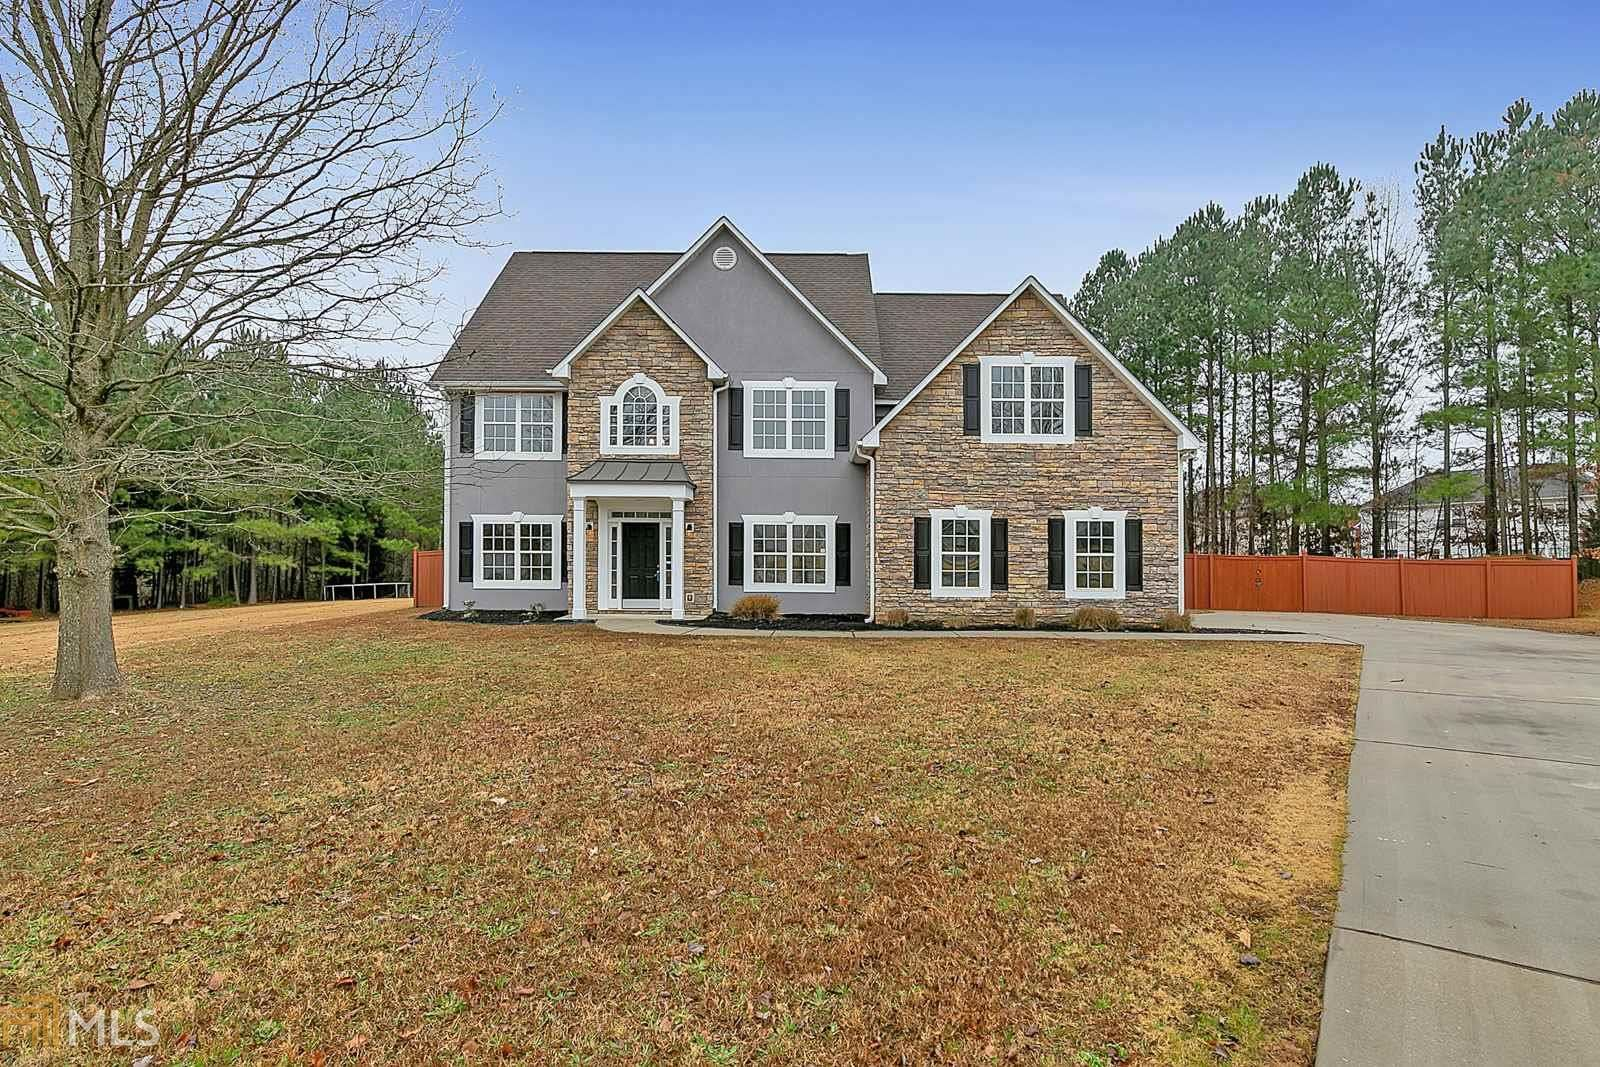 376 Sunderland Way, Stockbridge, GA 30281 - MLS#: 8910501